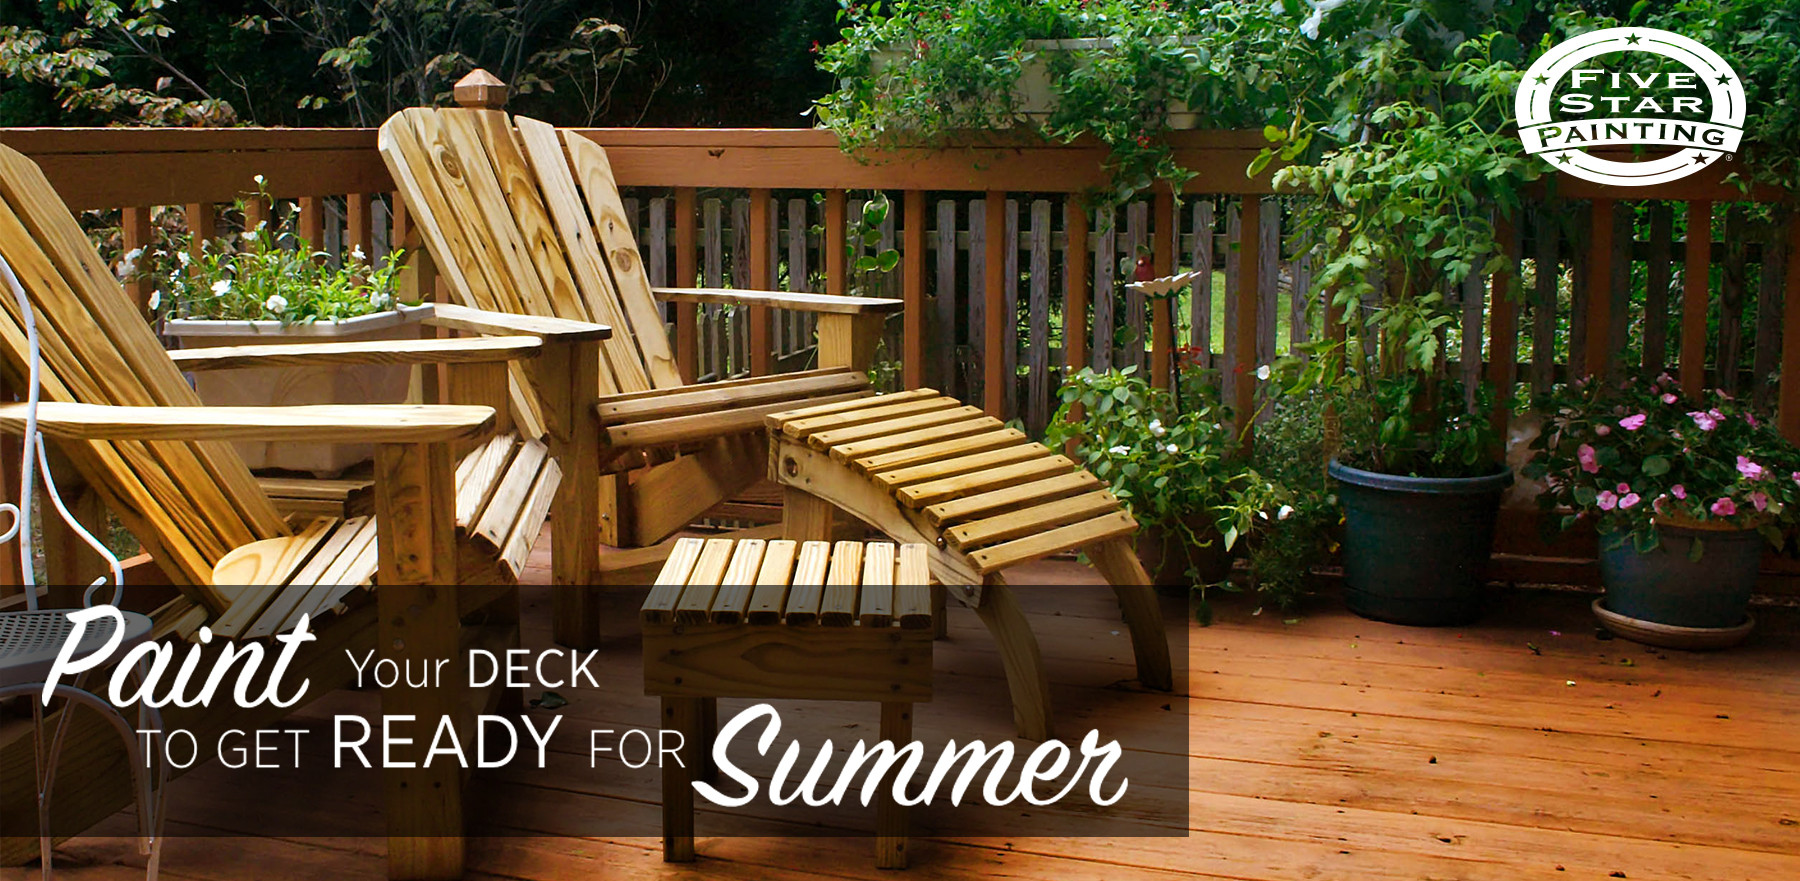 Painting Your Deck  Paint Your Deck to Get Ready for Summer